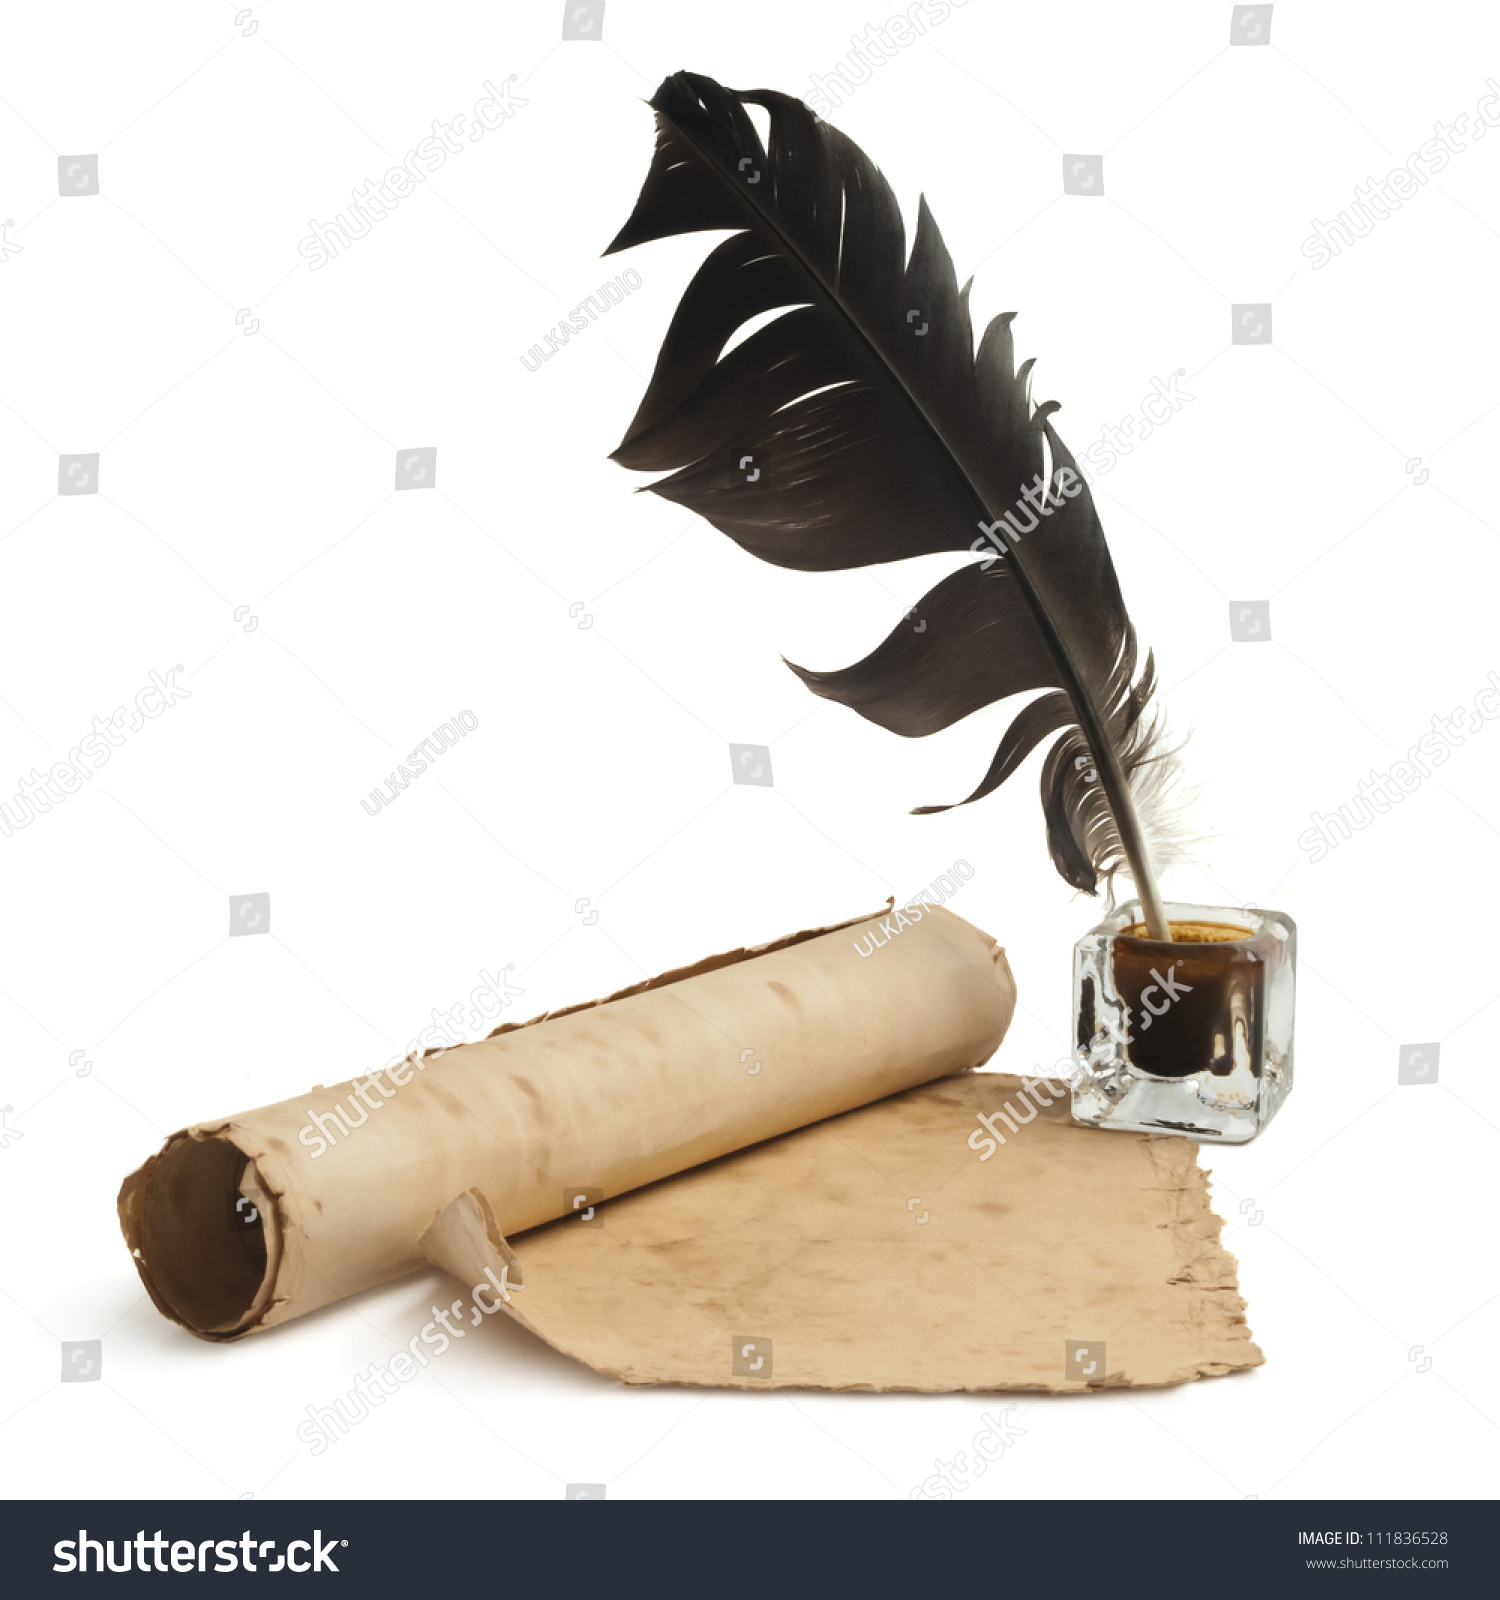 Blank Paper, Quill & Ink Stock Photo 111836528 : Shutterstock